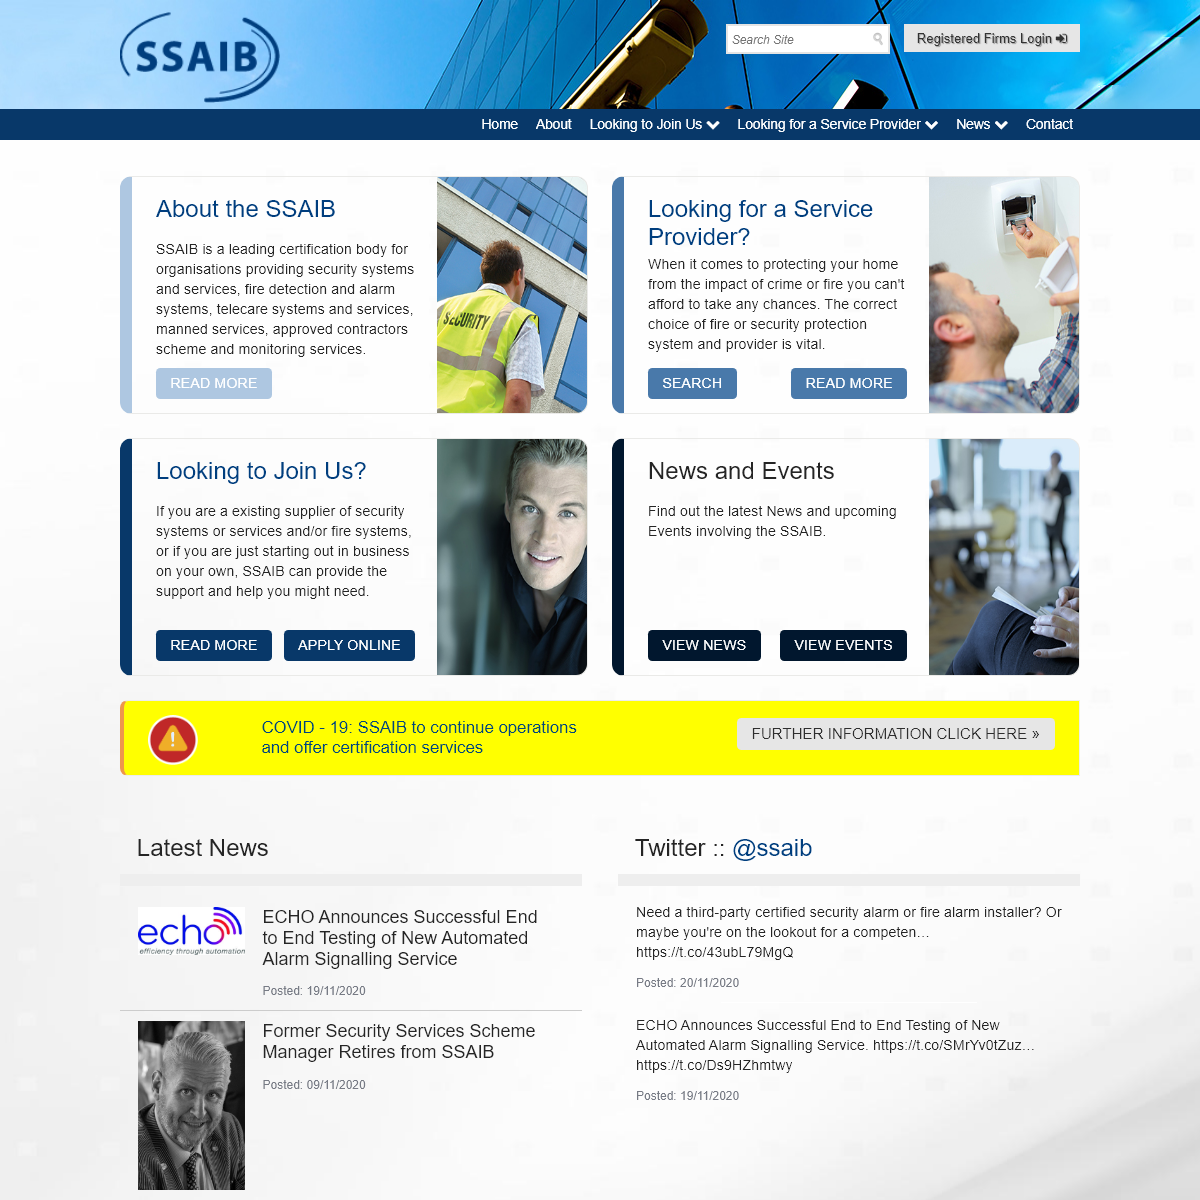 SSAIB - Certification for Security Service Providers